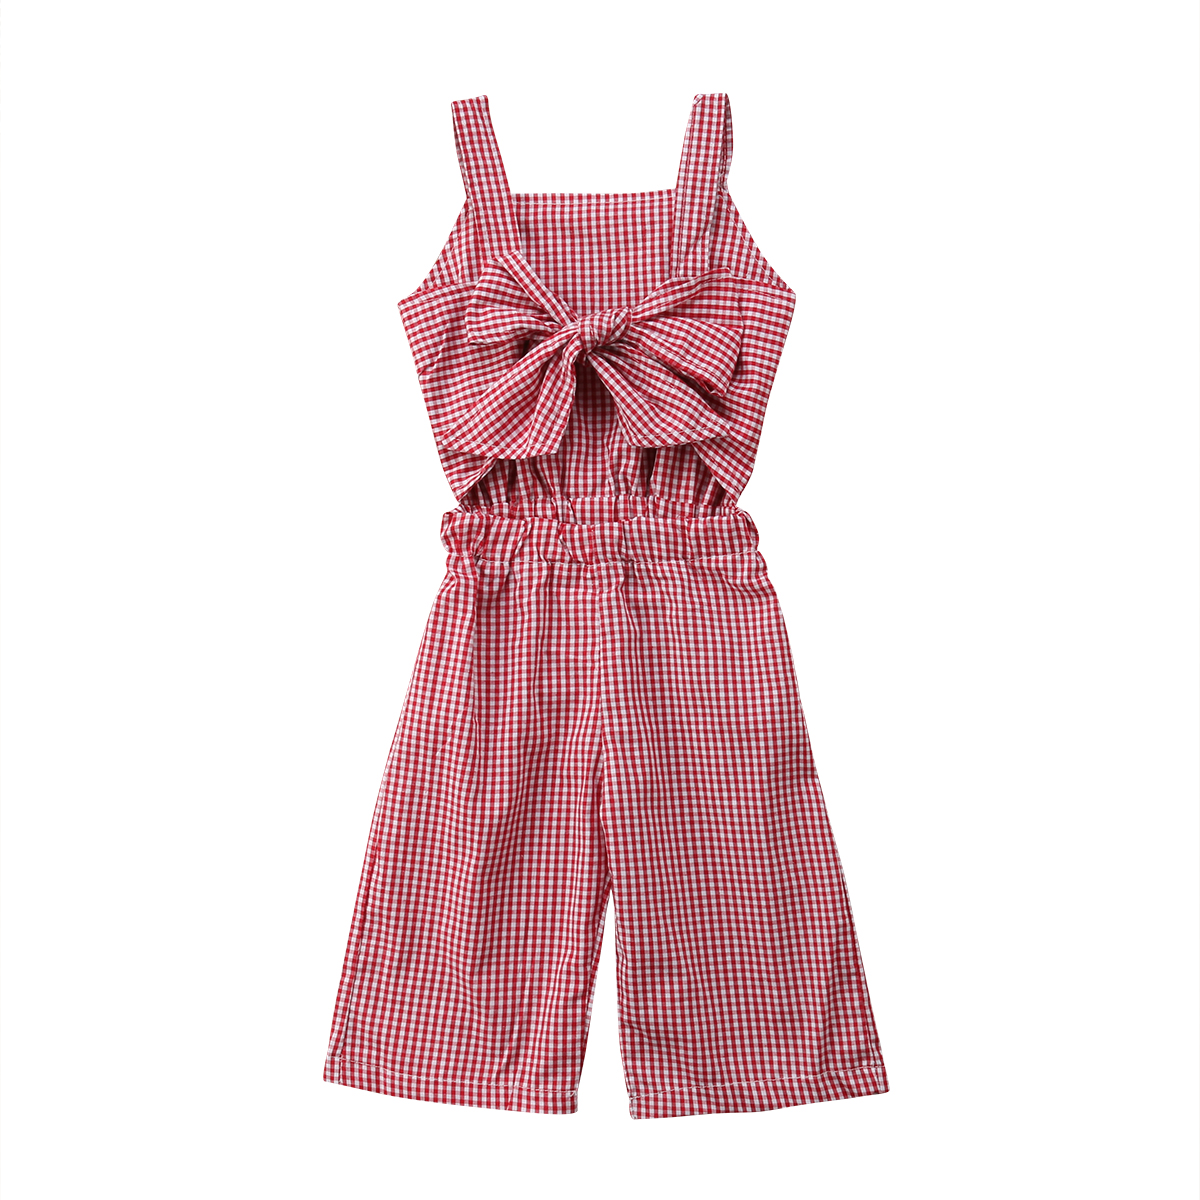 Newborn Kids Baby Girl Clothing Chest Strap Romper Sleeveless Bow Jumpsuit Sunsuit Clothes Outfits Girls 1-6T